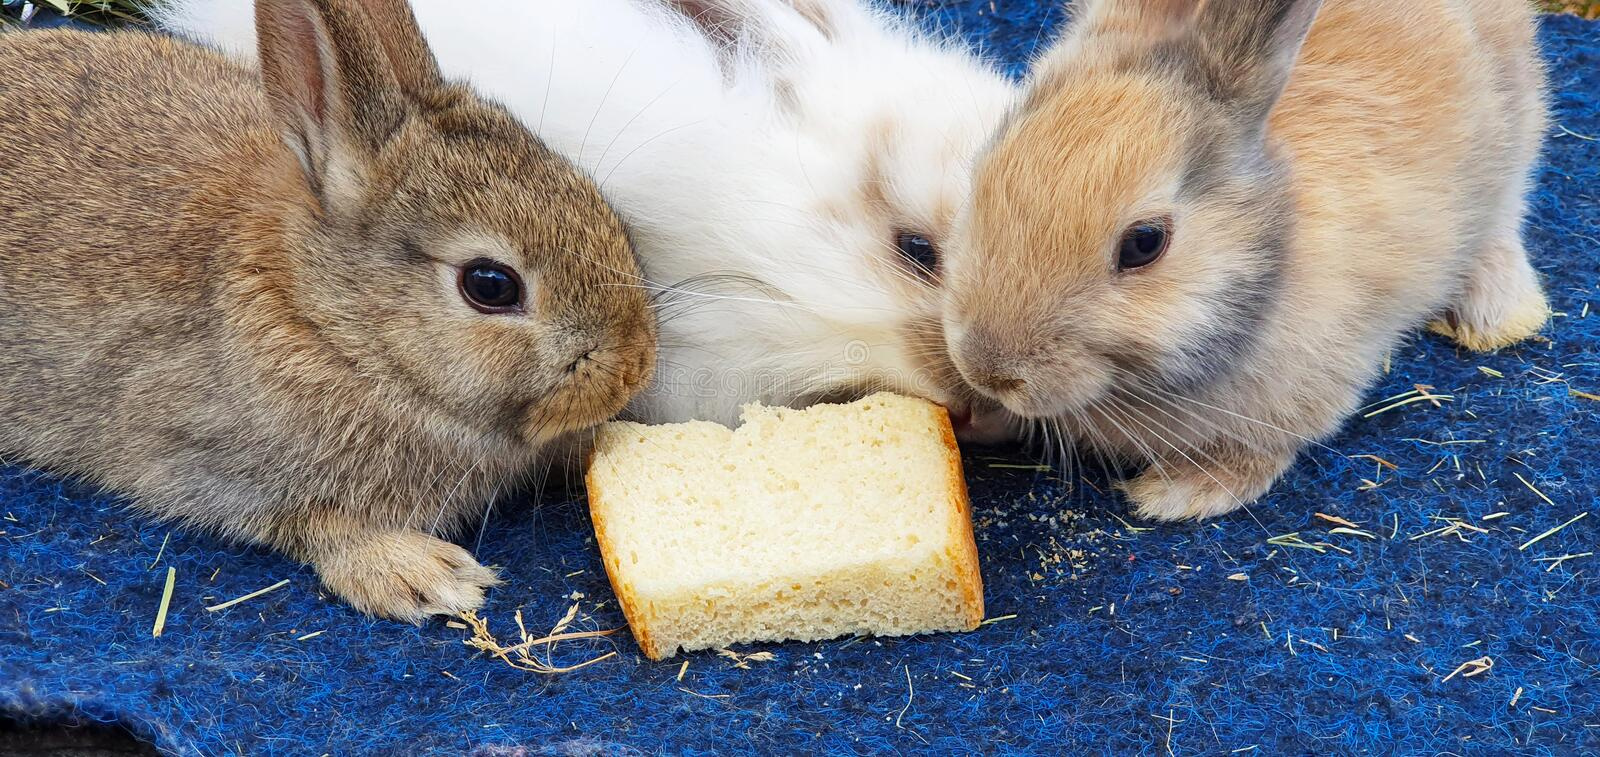 Three cute fluffy rabbits eat a slice of bread close-up royalty free stock images